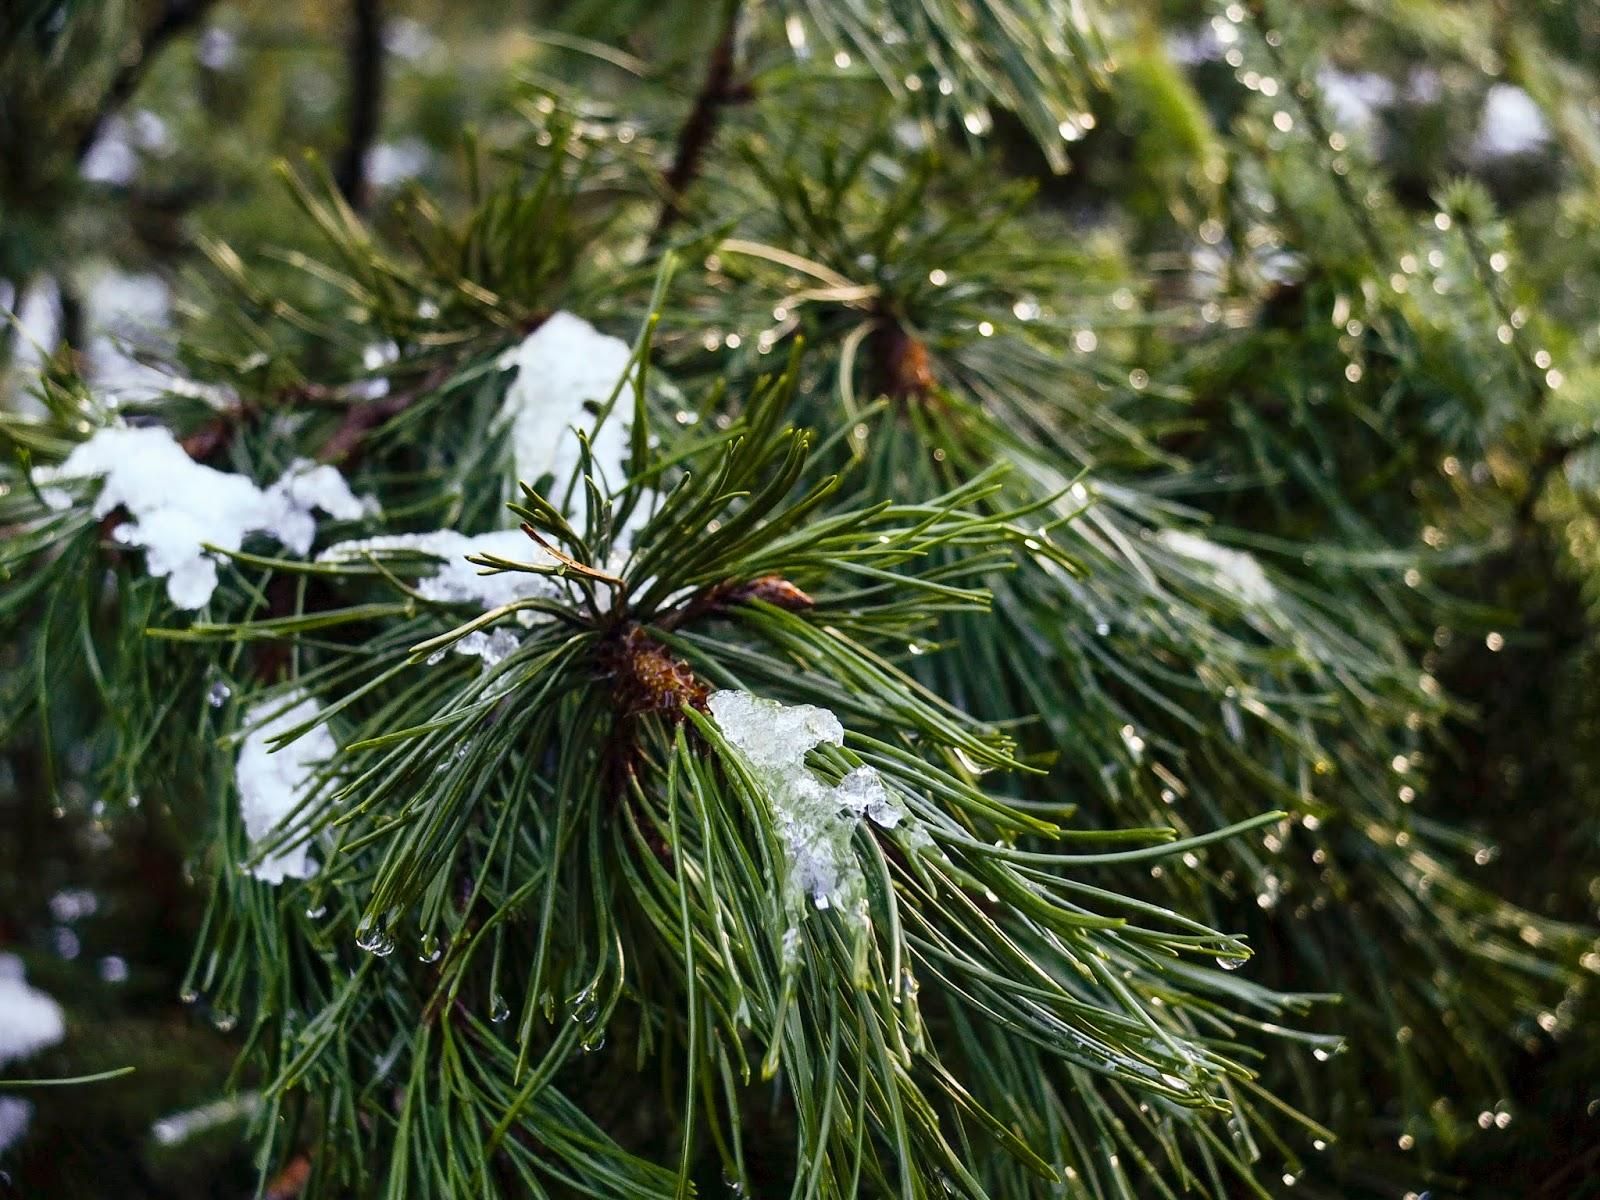 Close up of a conifer branch with speckles of melting snow and droplets shining in the sunlight.